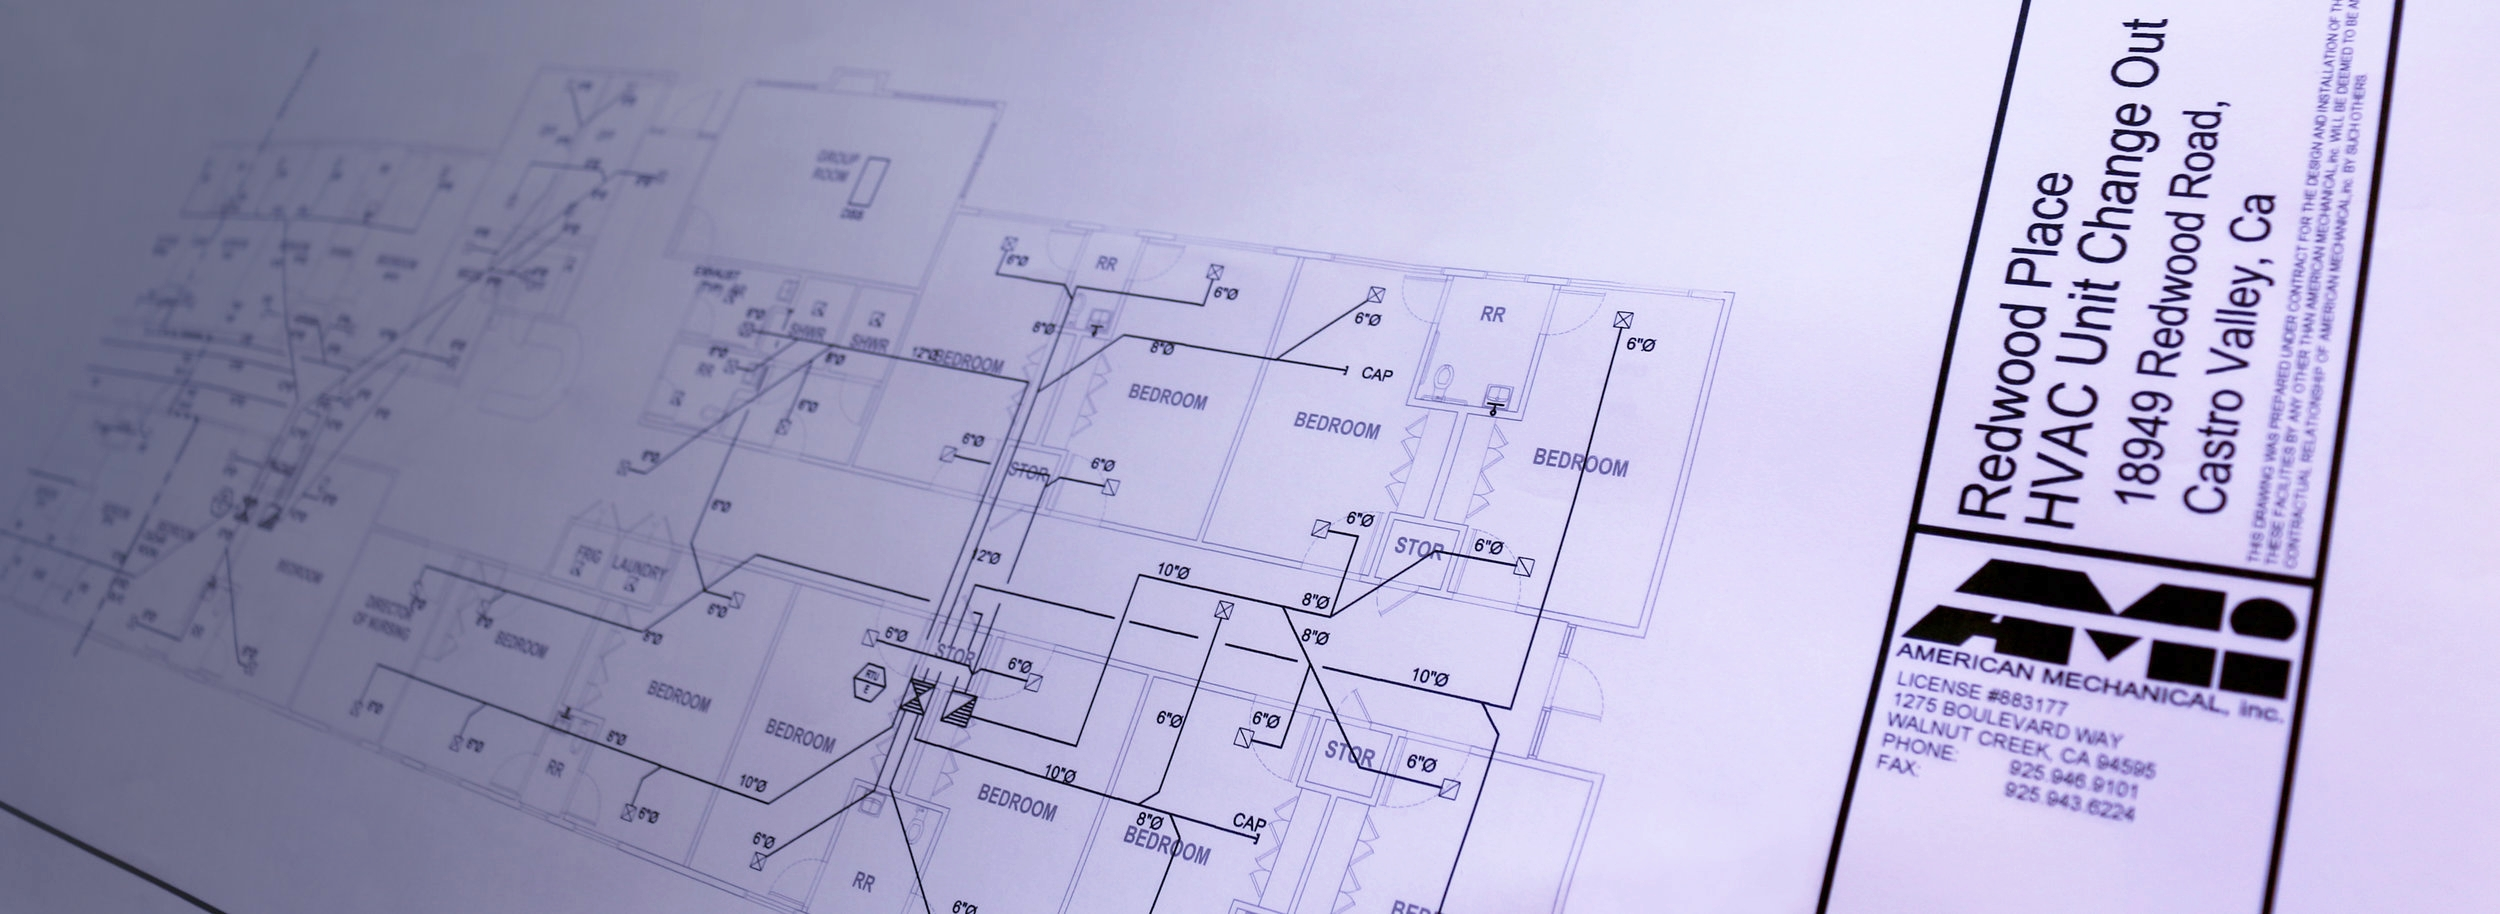 small resolution of blueprint 3 jpg format 2500w